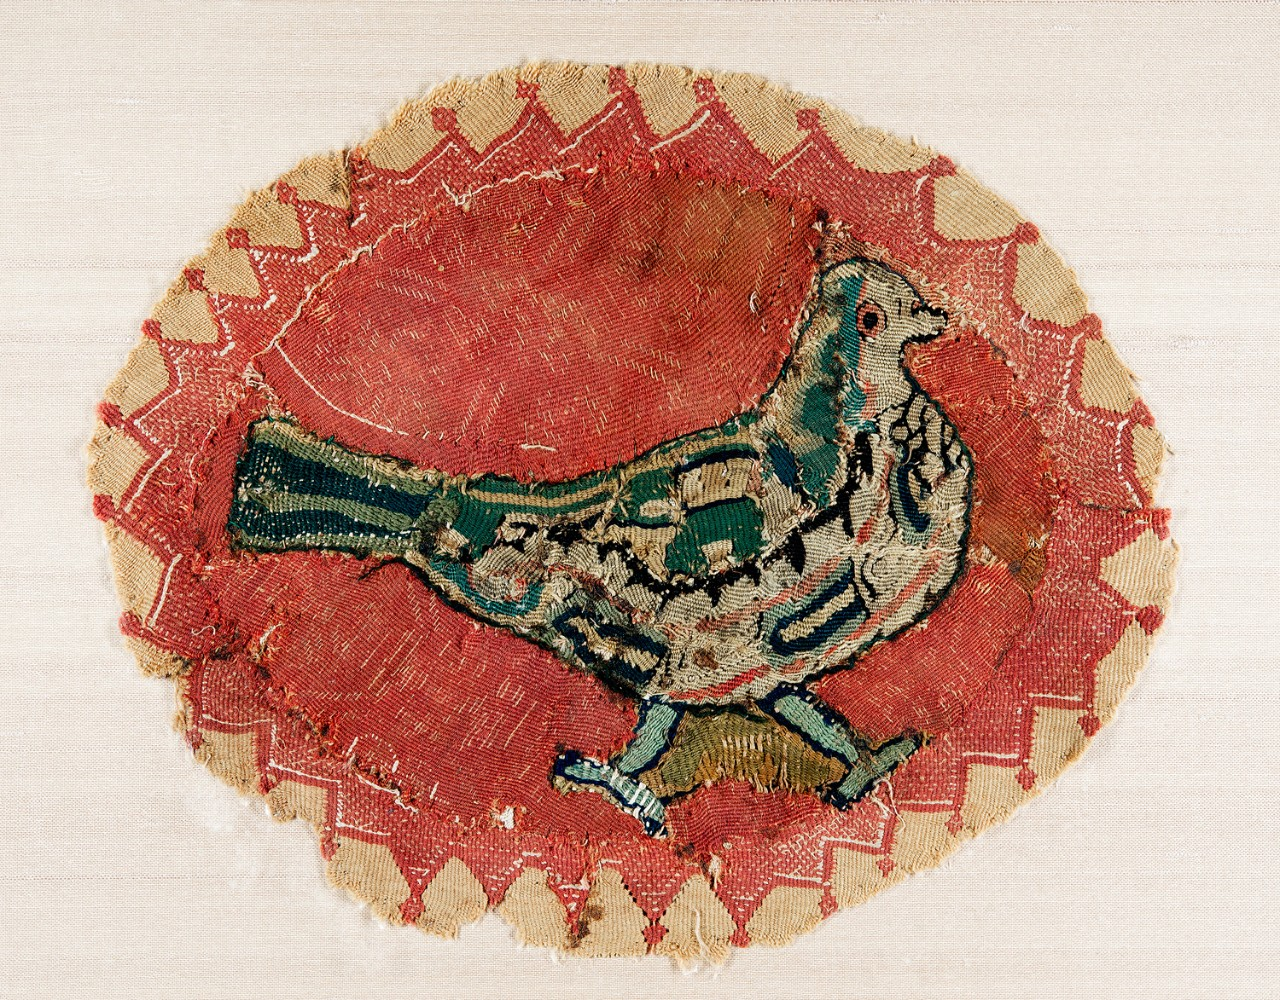 Textile roundel with dove Egypt, 5th–6th century CE wool on linen, 9 x 10.8 in.